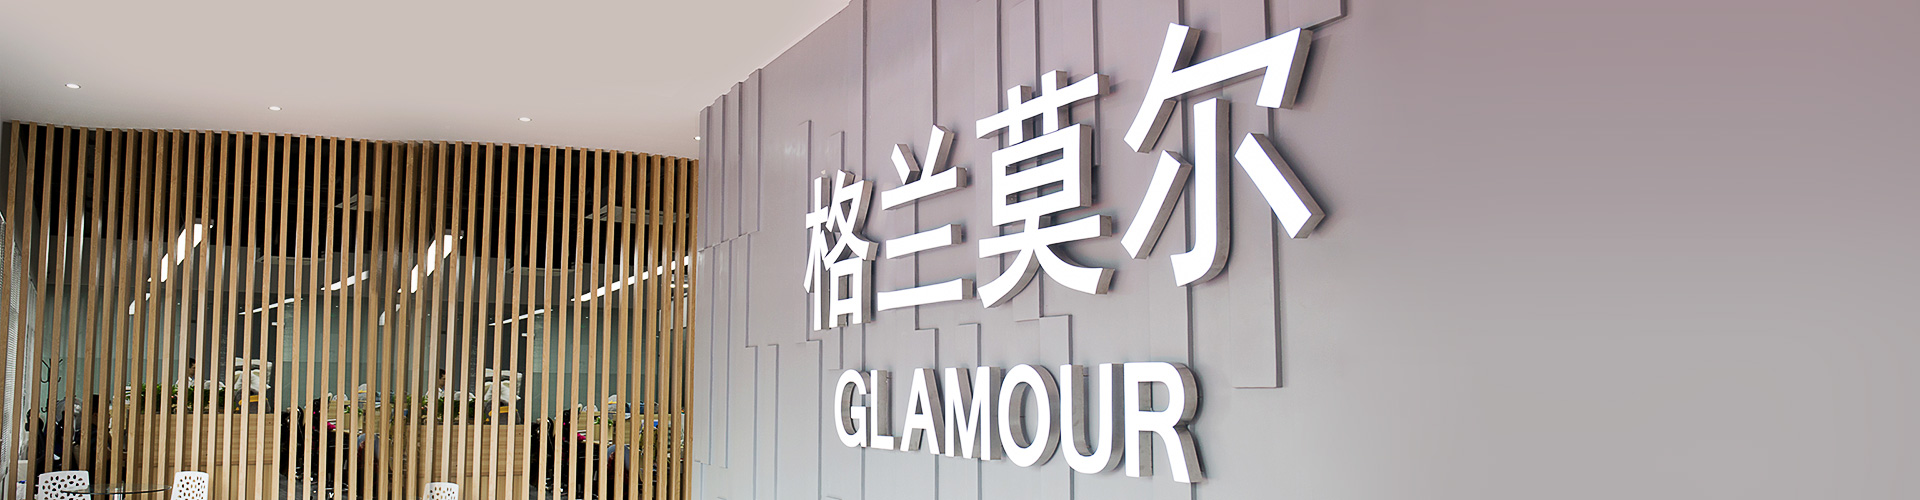 About Glamour